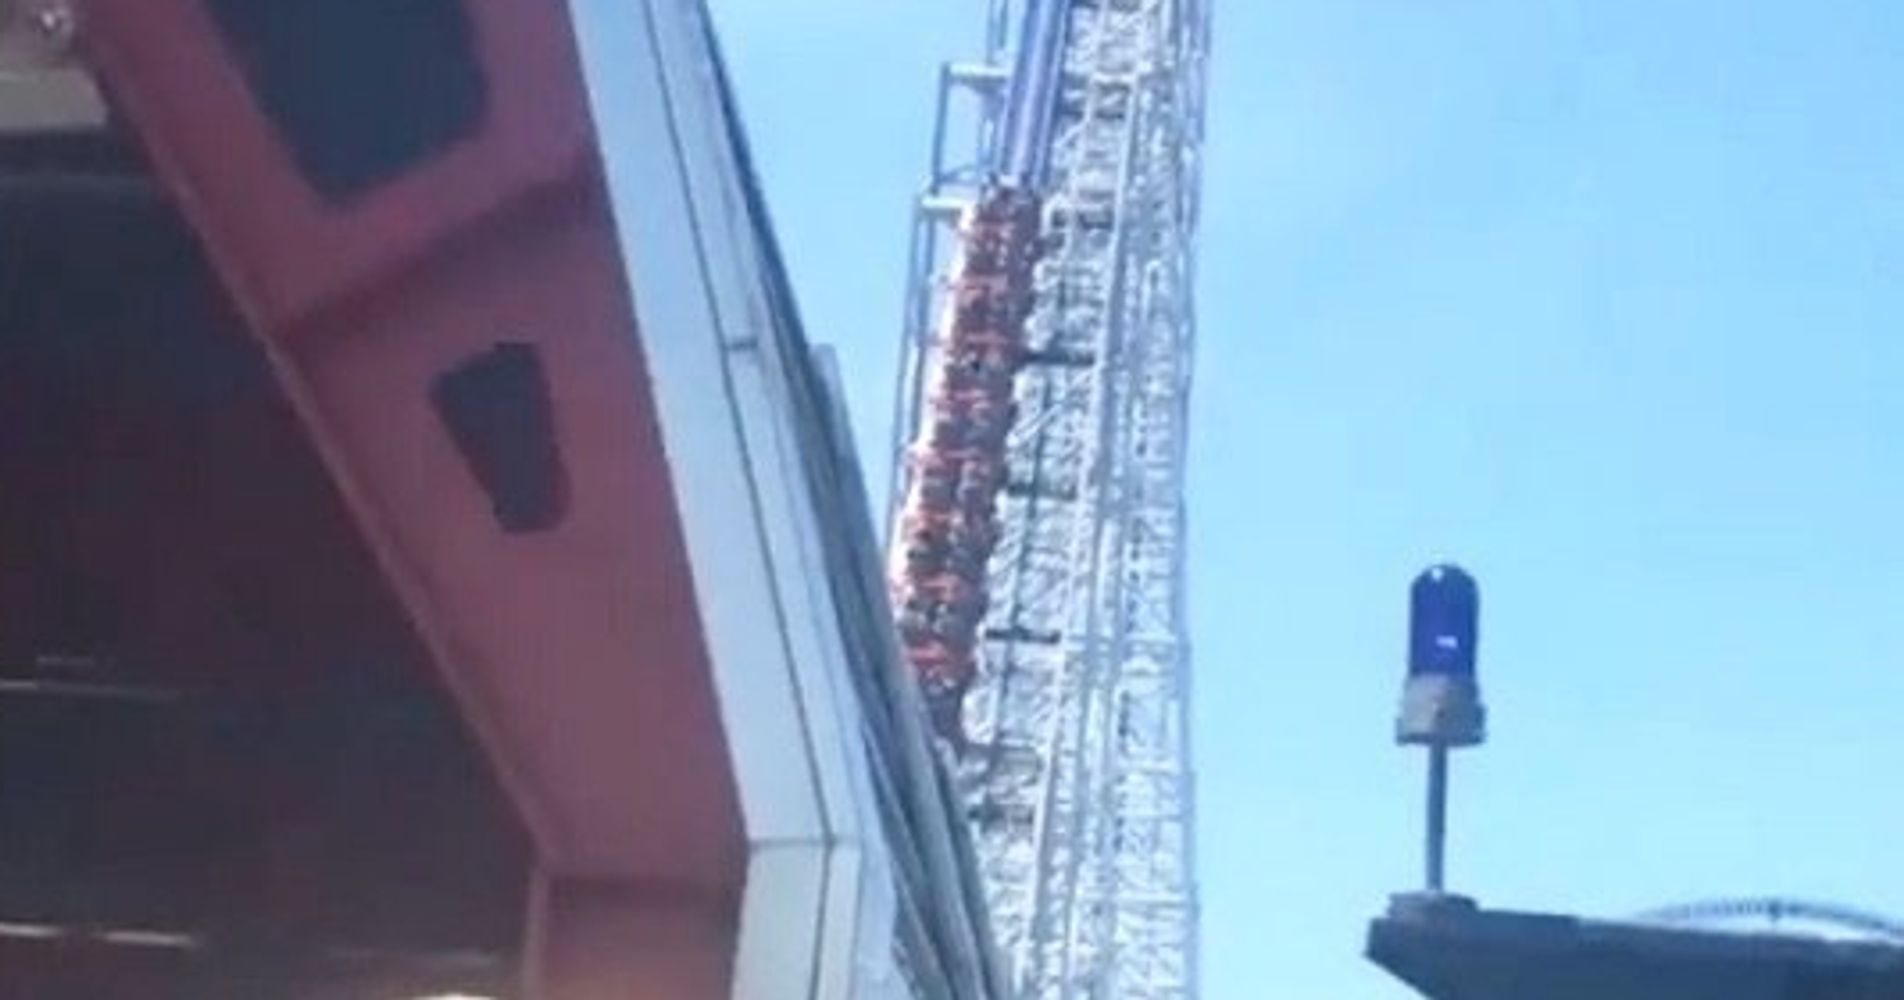 Roller Coaster Riders Stuck In 90-Degree Heat During Power Outage At Theme Park